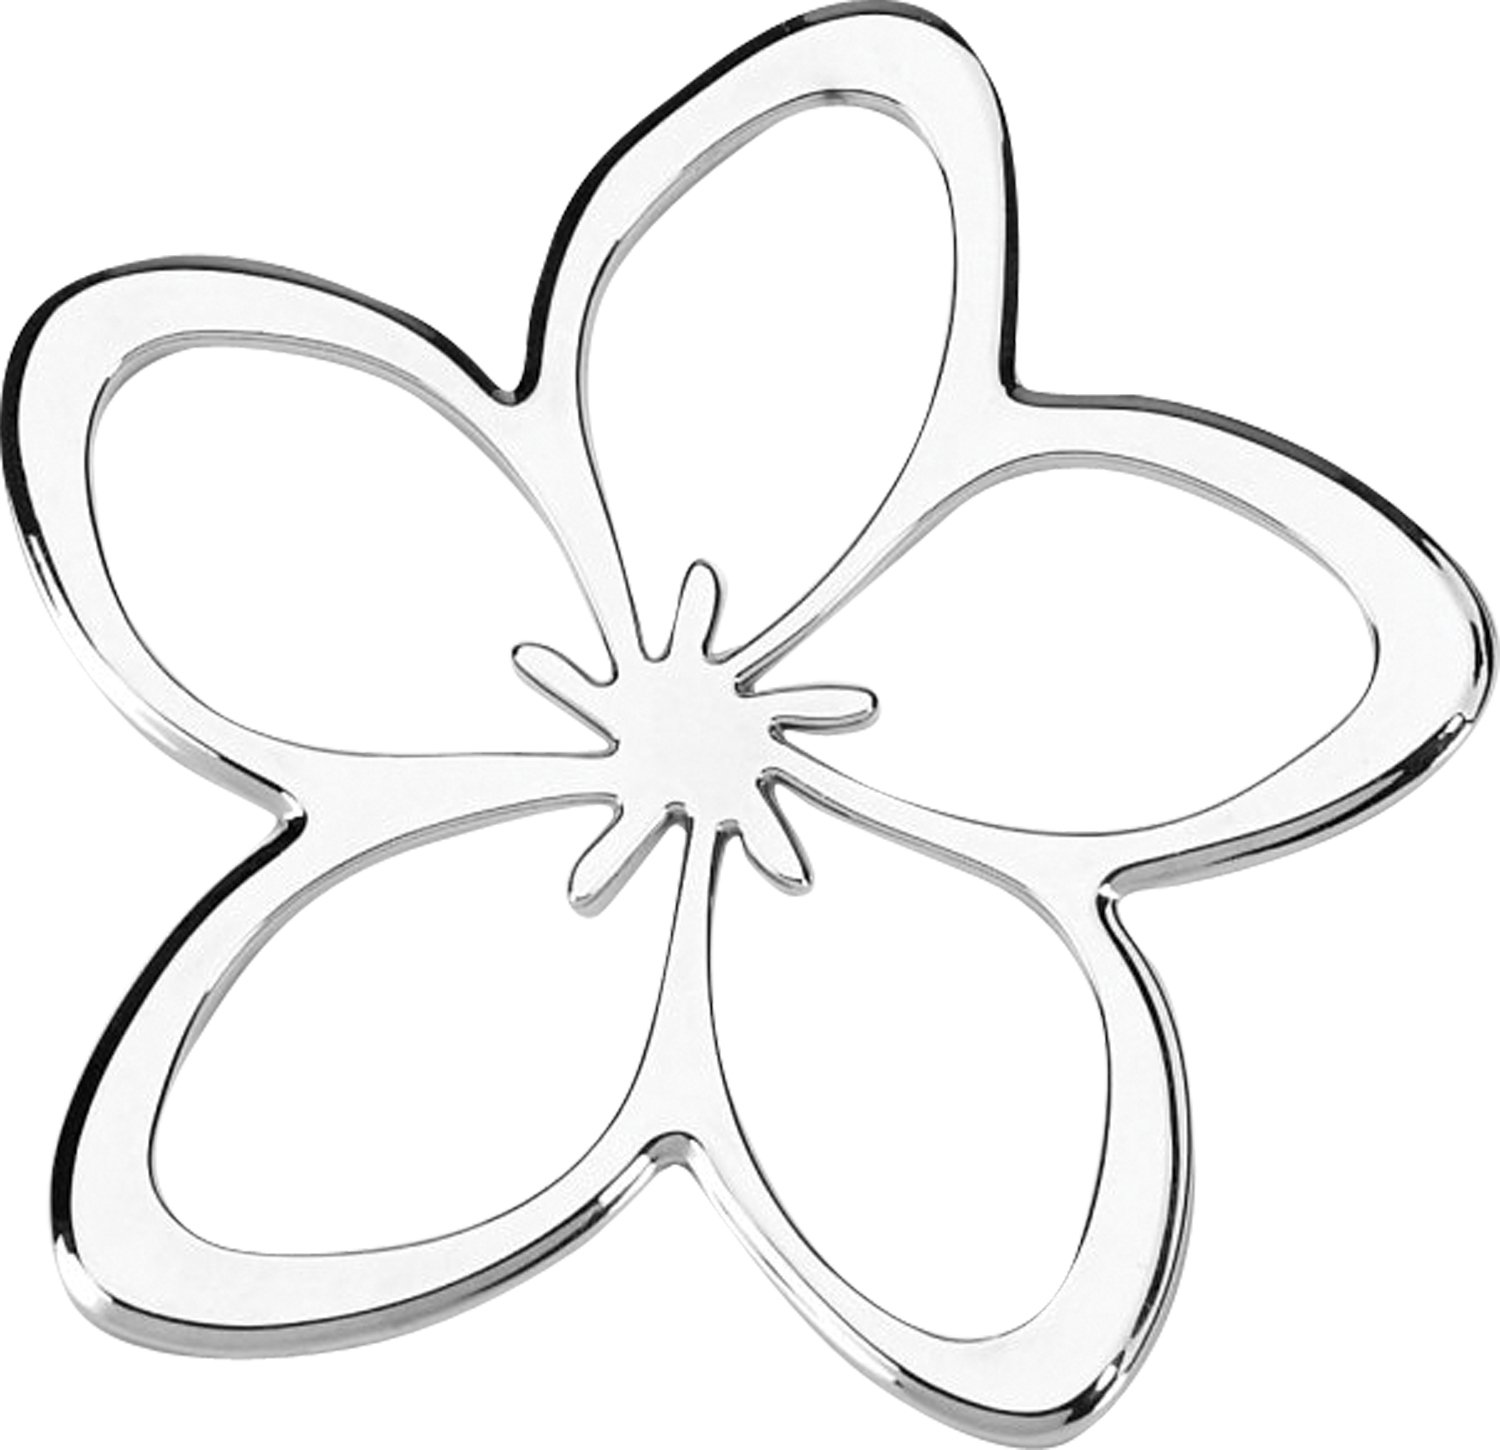 Cruiser Accessories 83033 Plumeria 3d Cals Raised Adhesive Decal Chrome